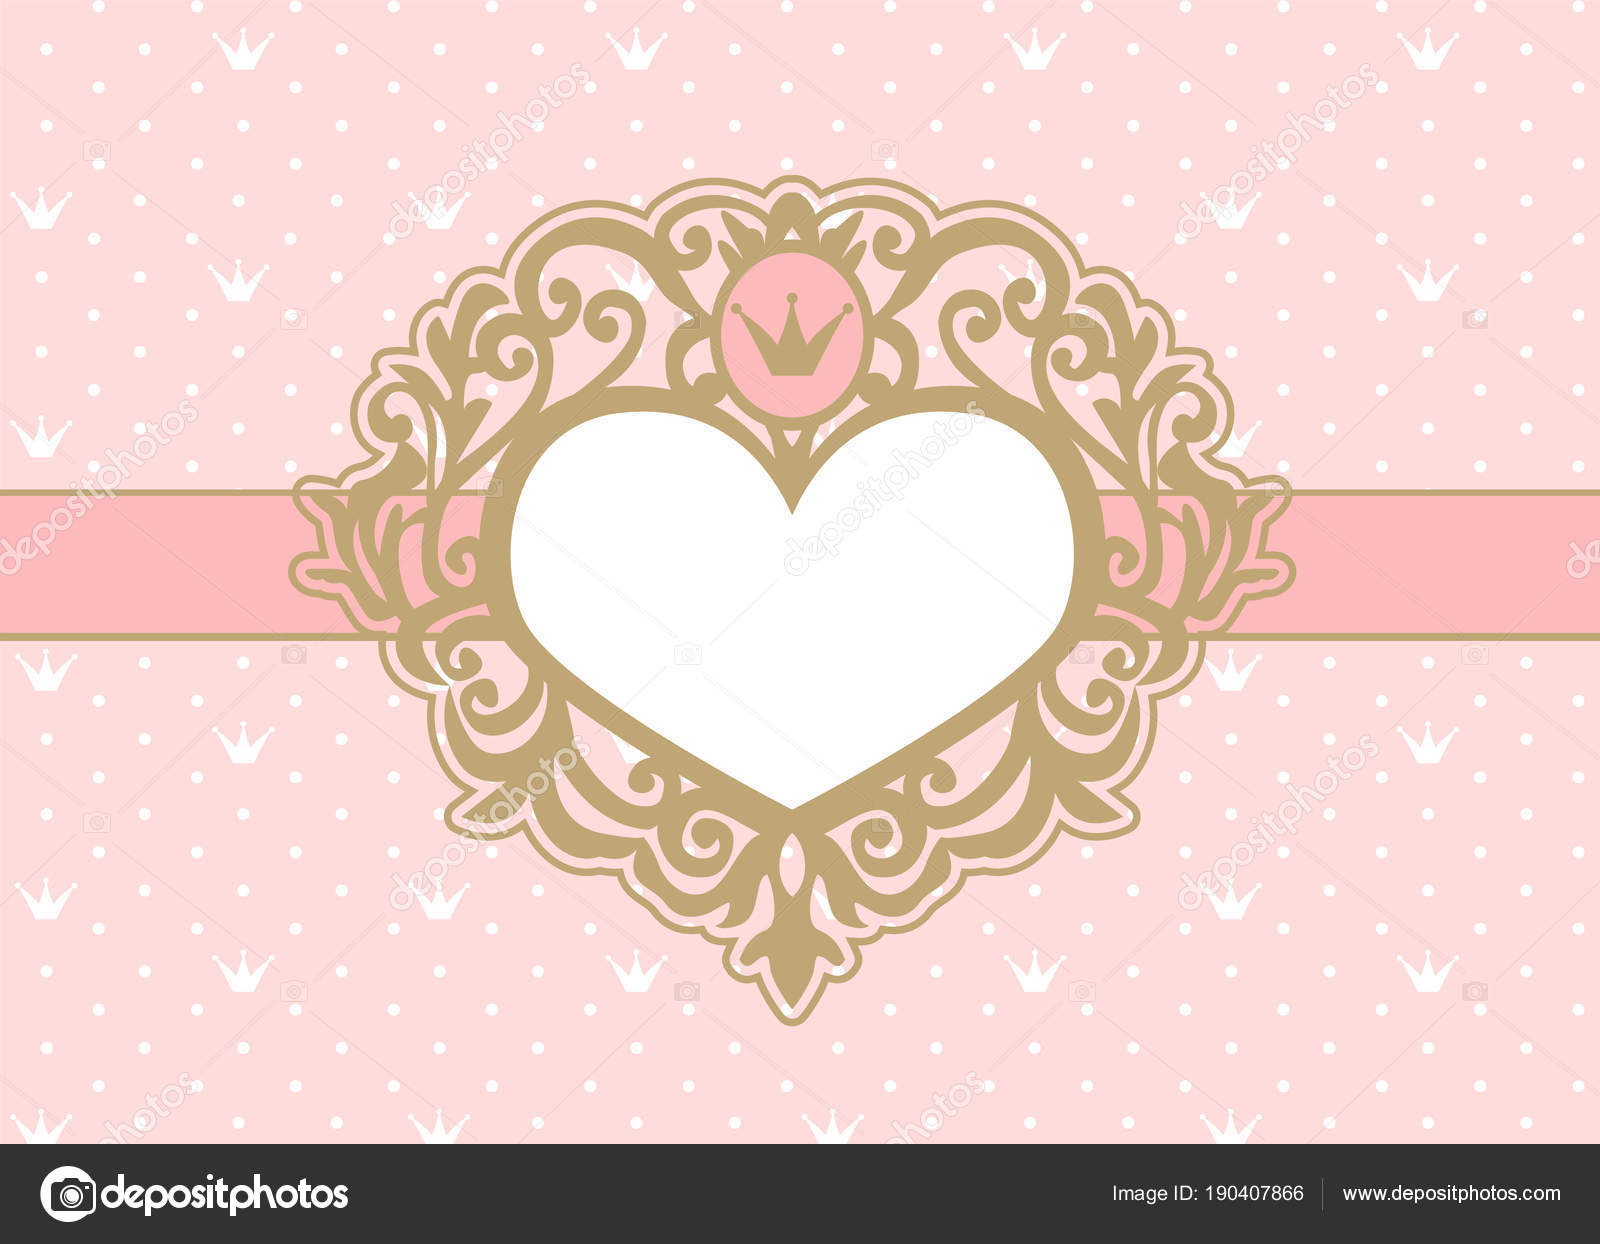 depositphotos_190407866 stock illustration cute pink background polka dots